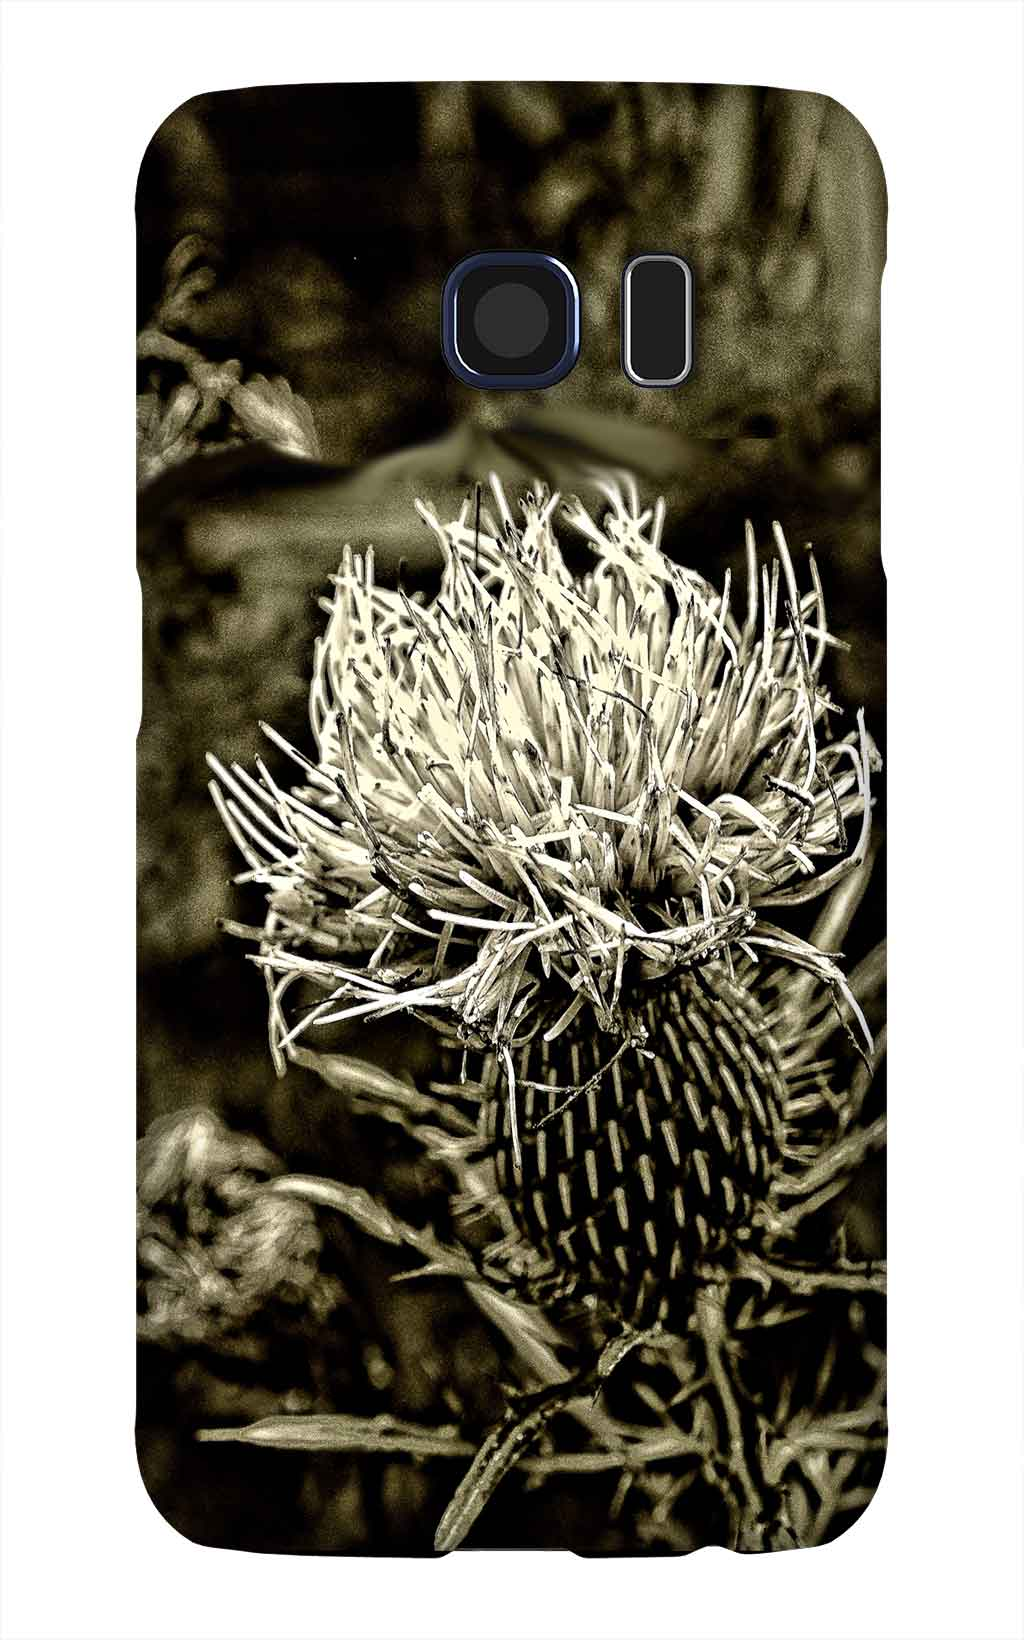 Product, Cellphone Case: Thistle – Closeup of white thistle in black and white